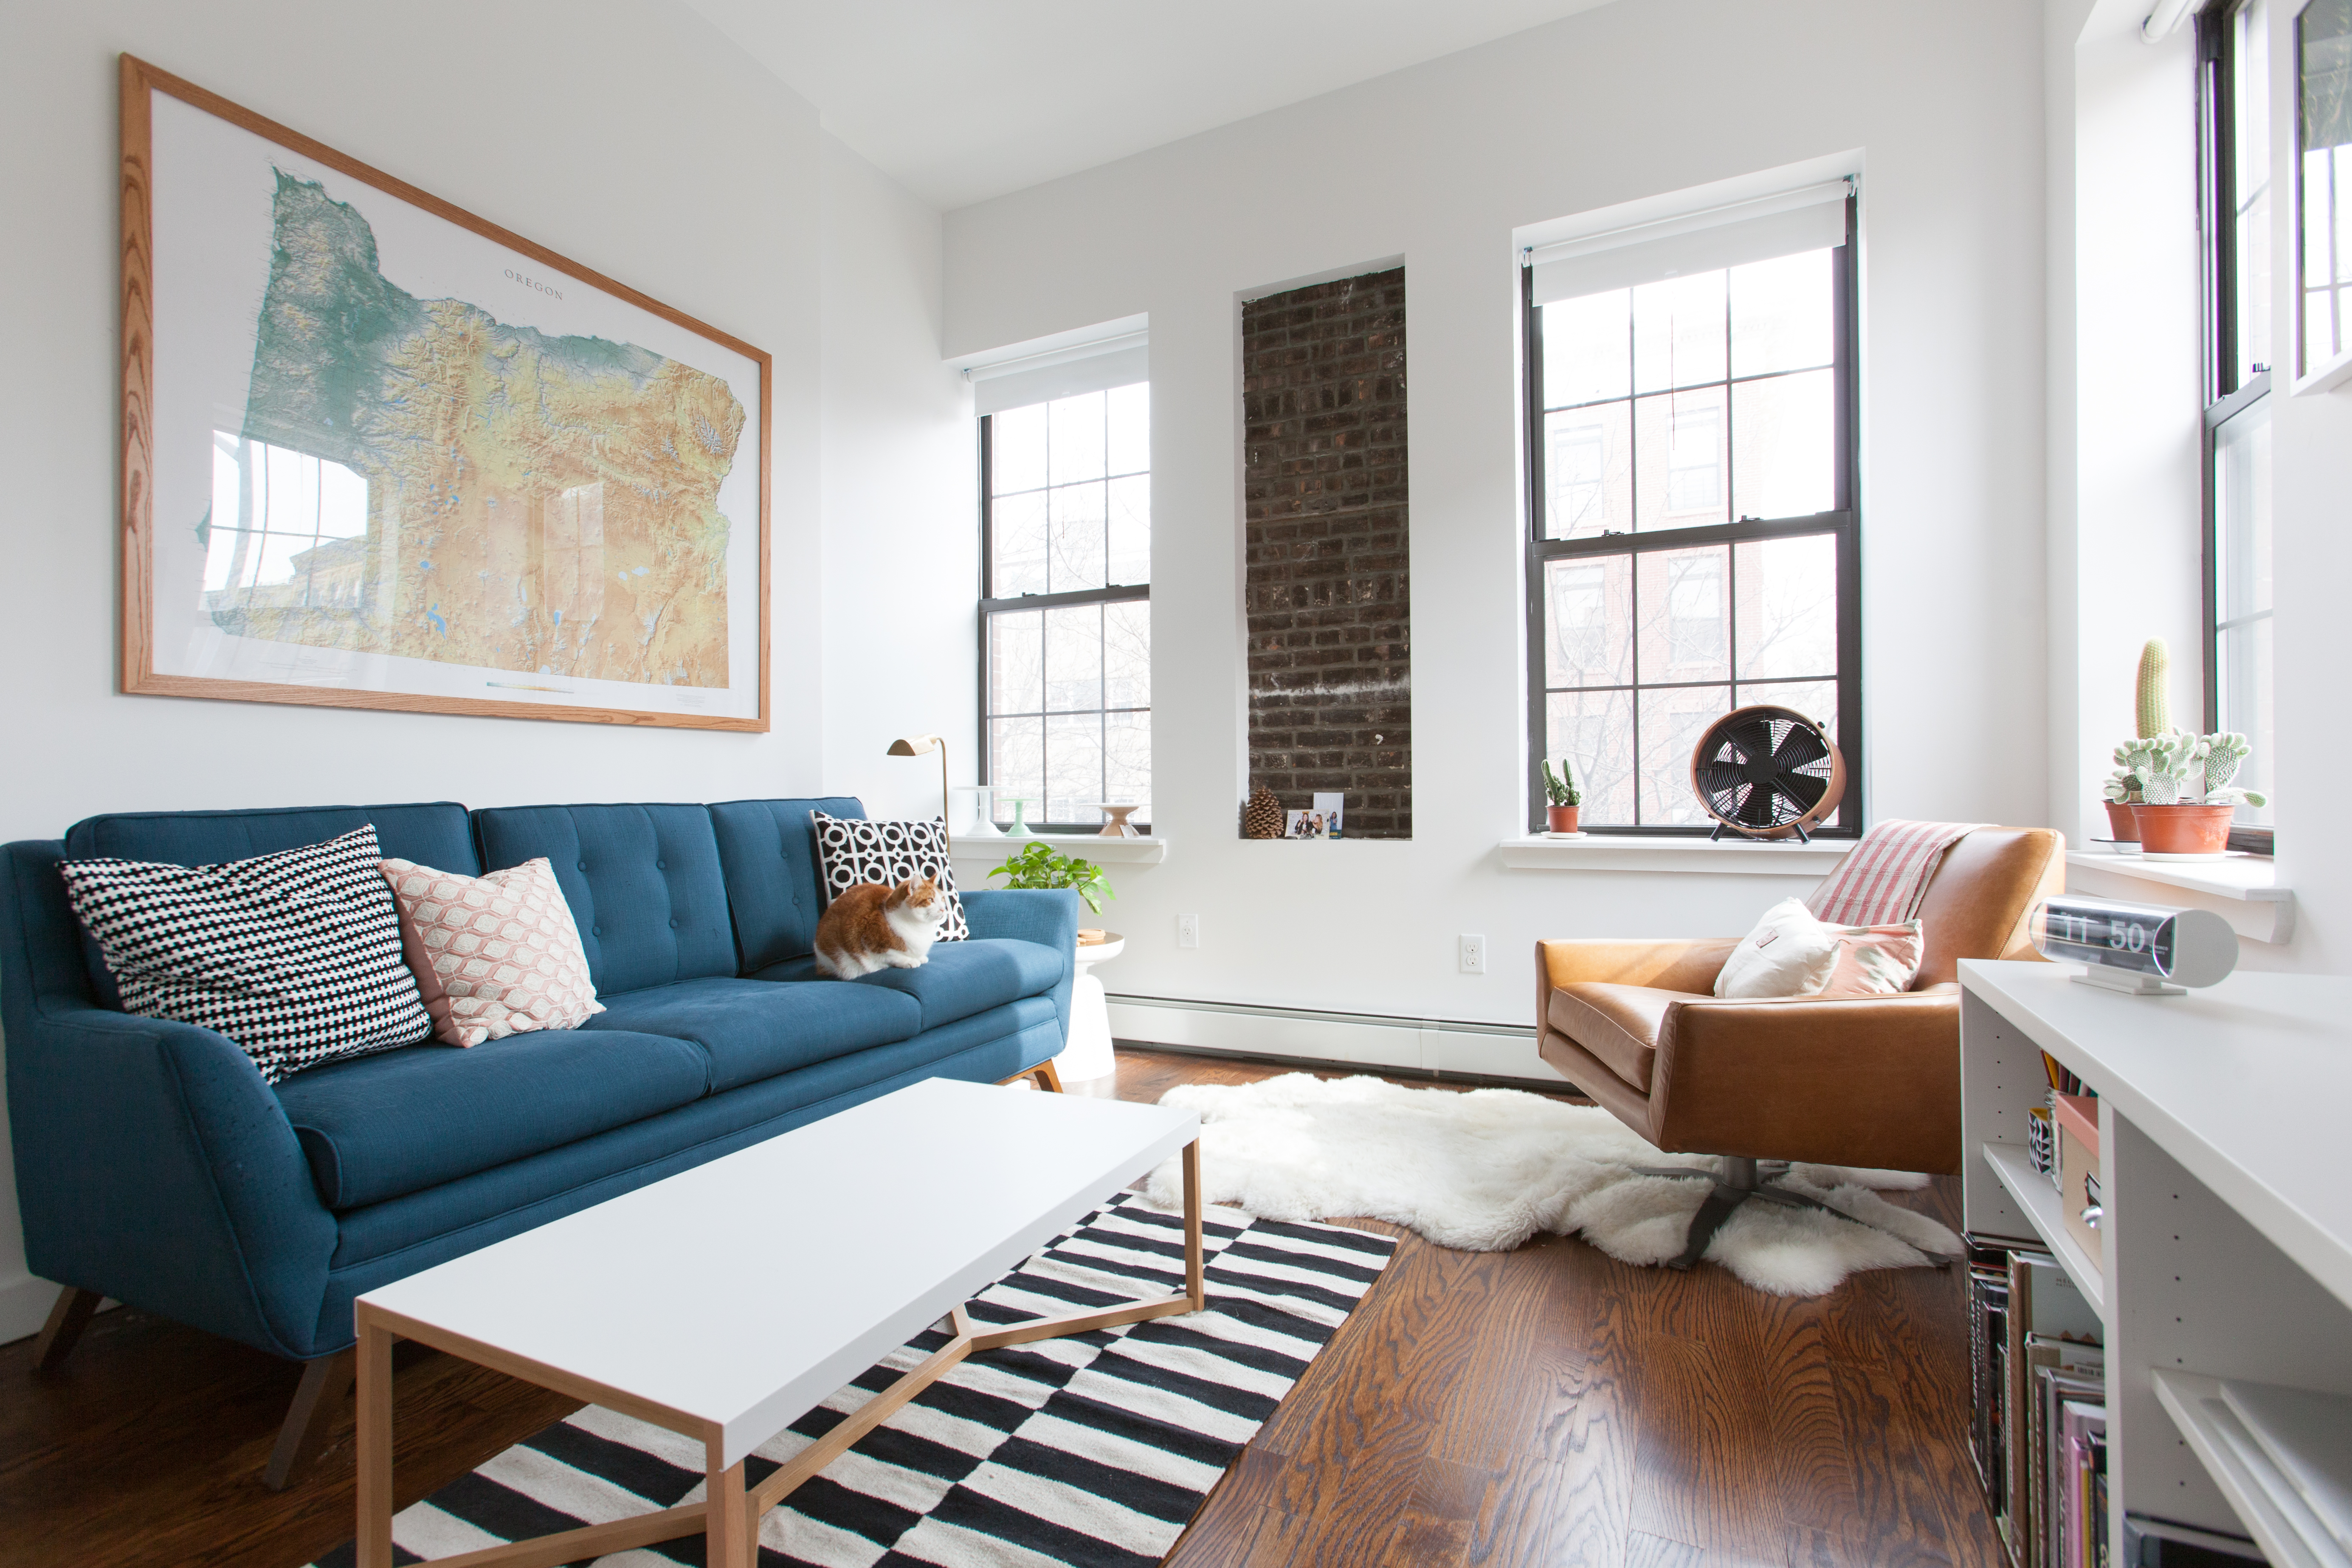 The 10 Living Room Paint Colors Design Pros Swear By